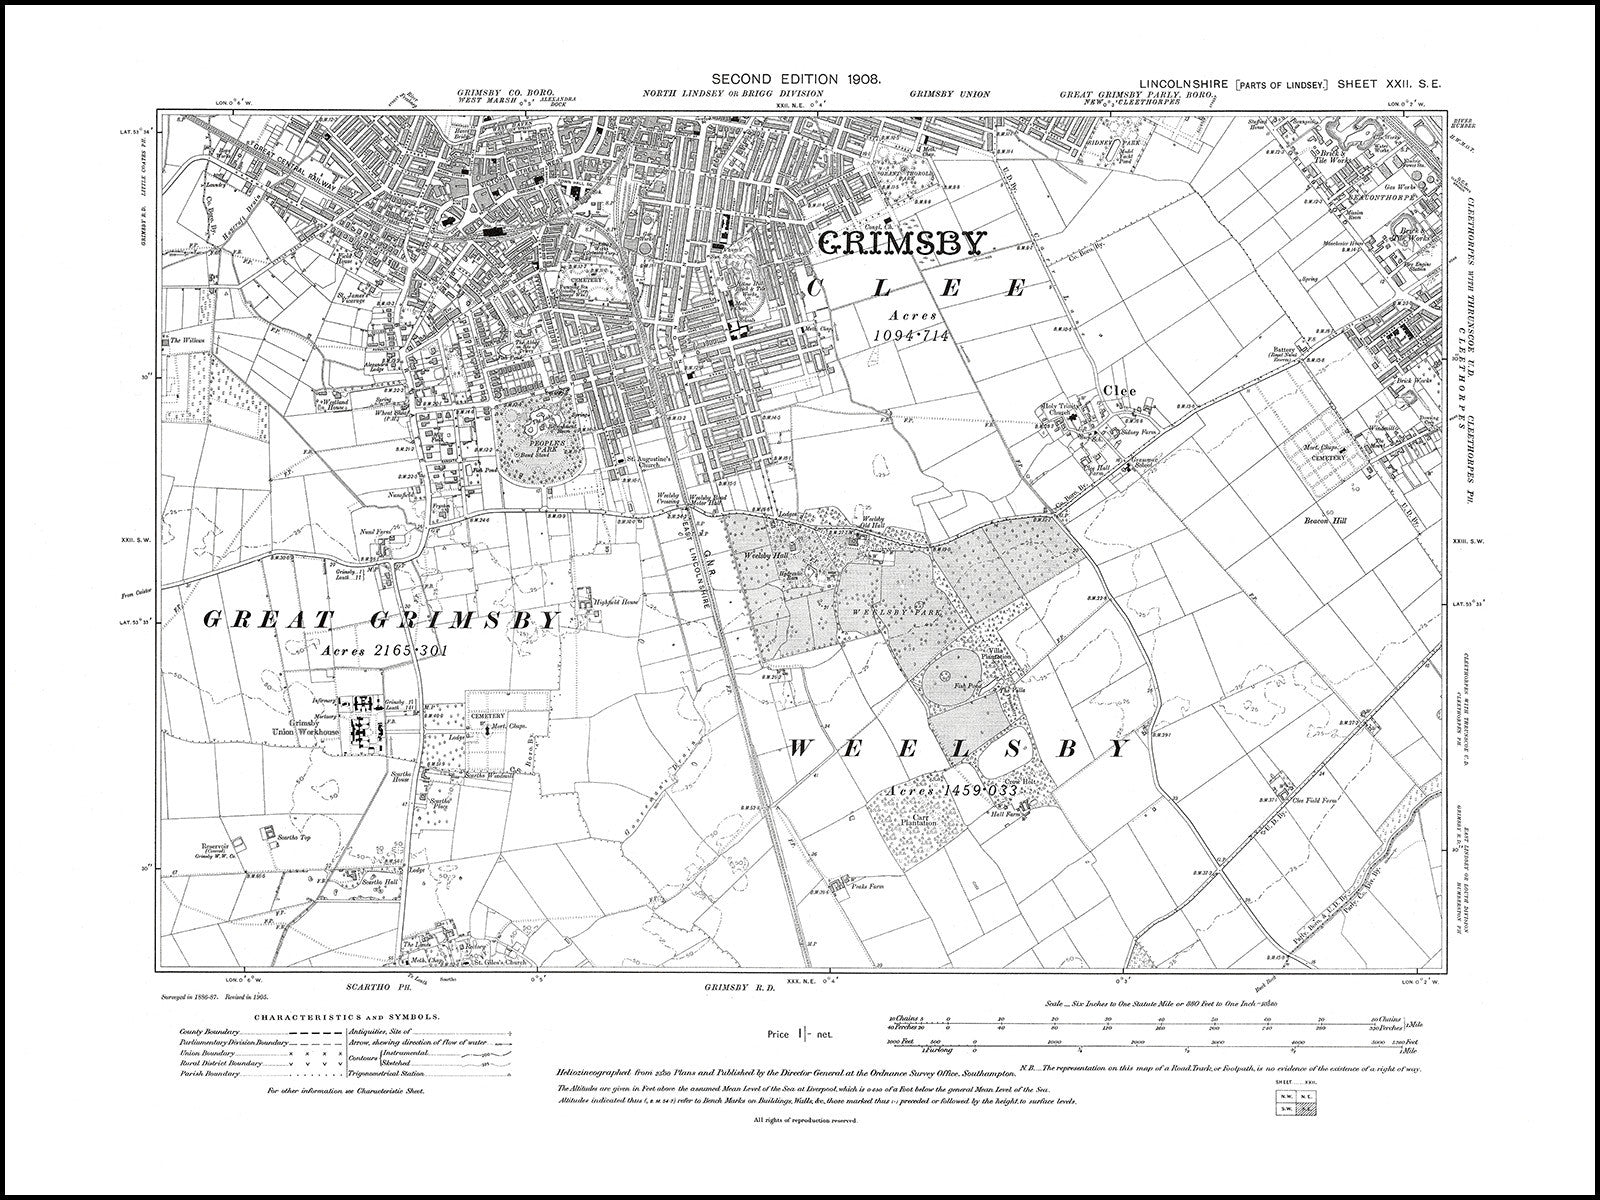 Old map 1908 Grimsby S Cleethorpes W Clee Old Towns Maps